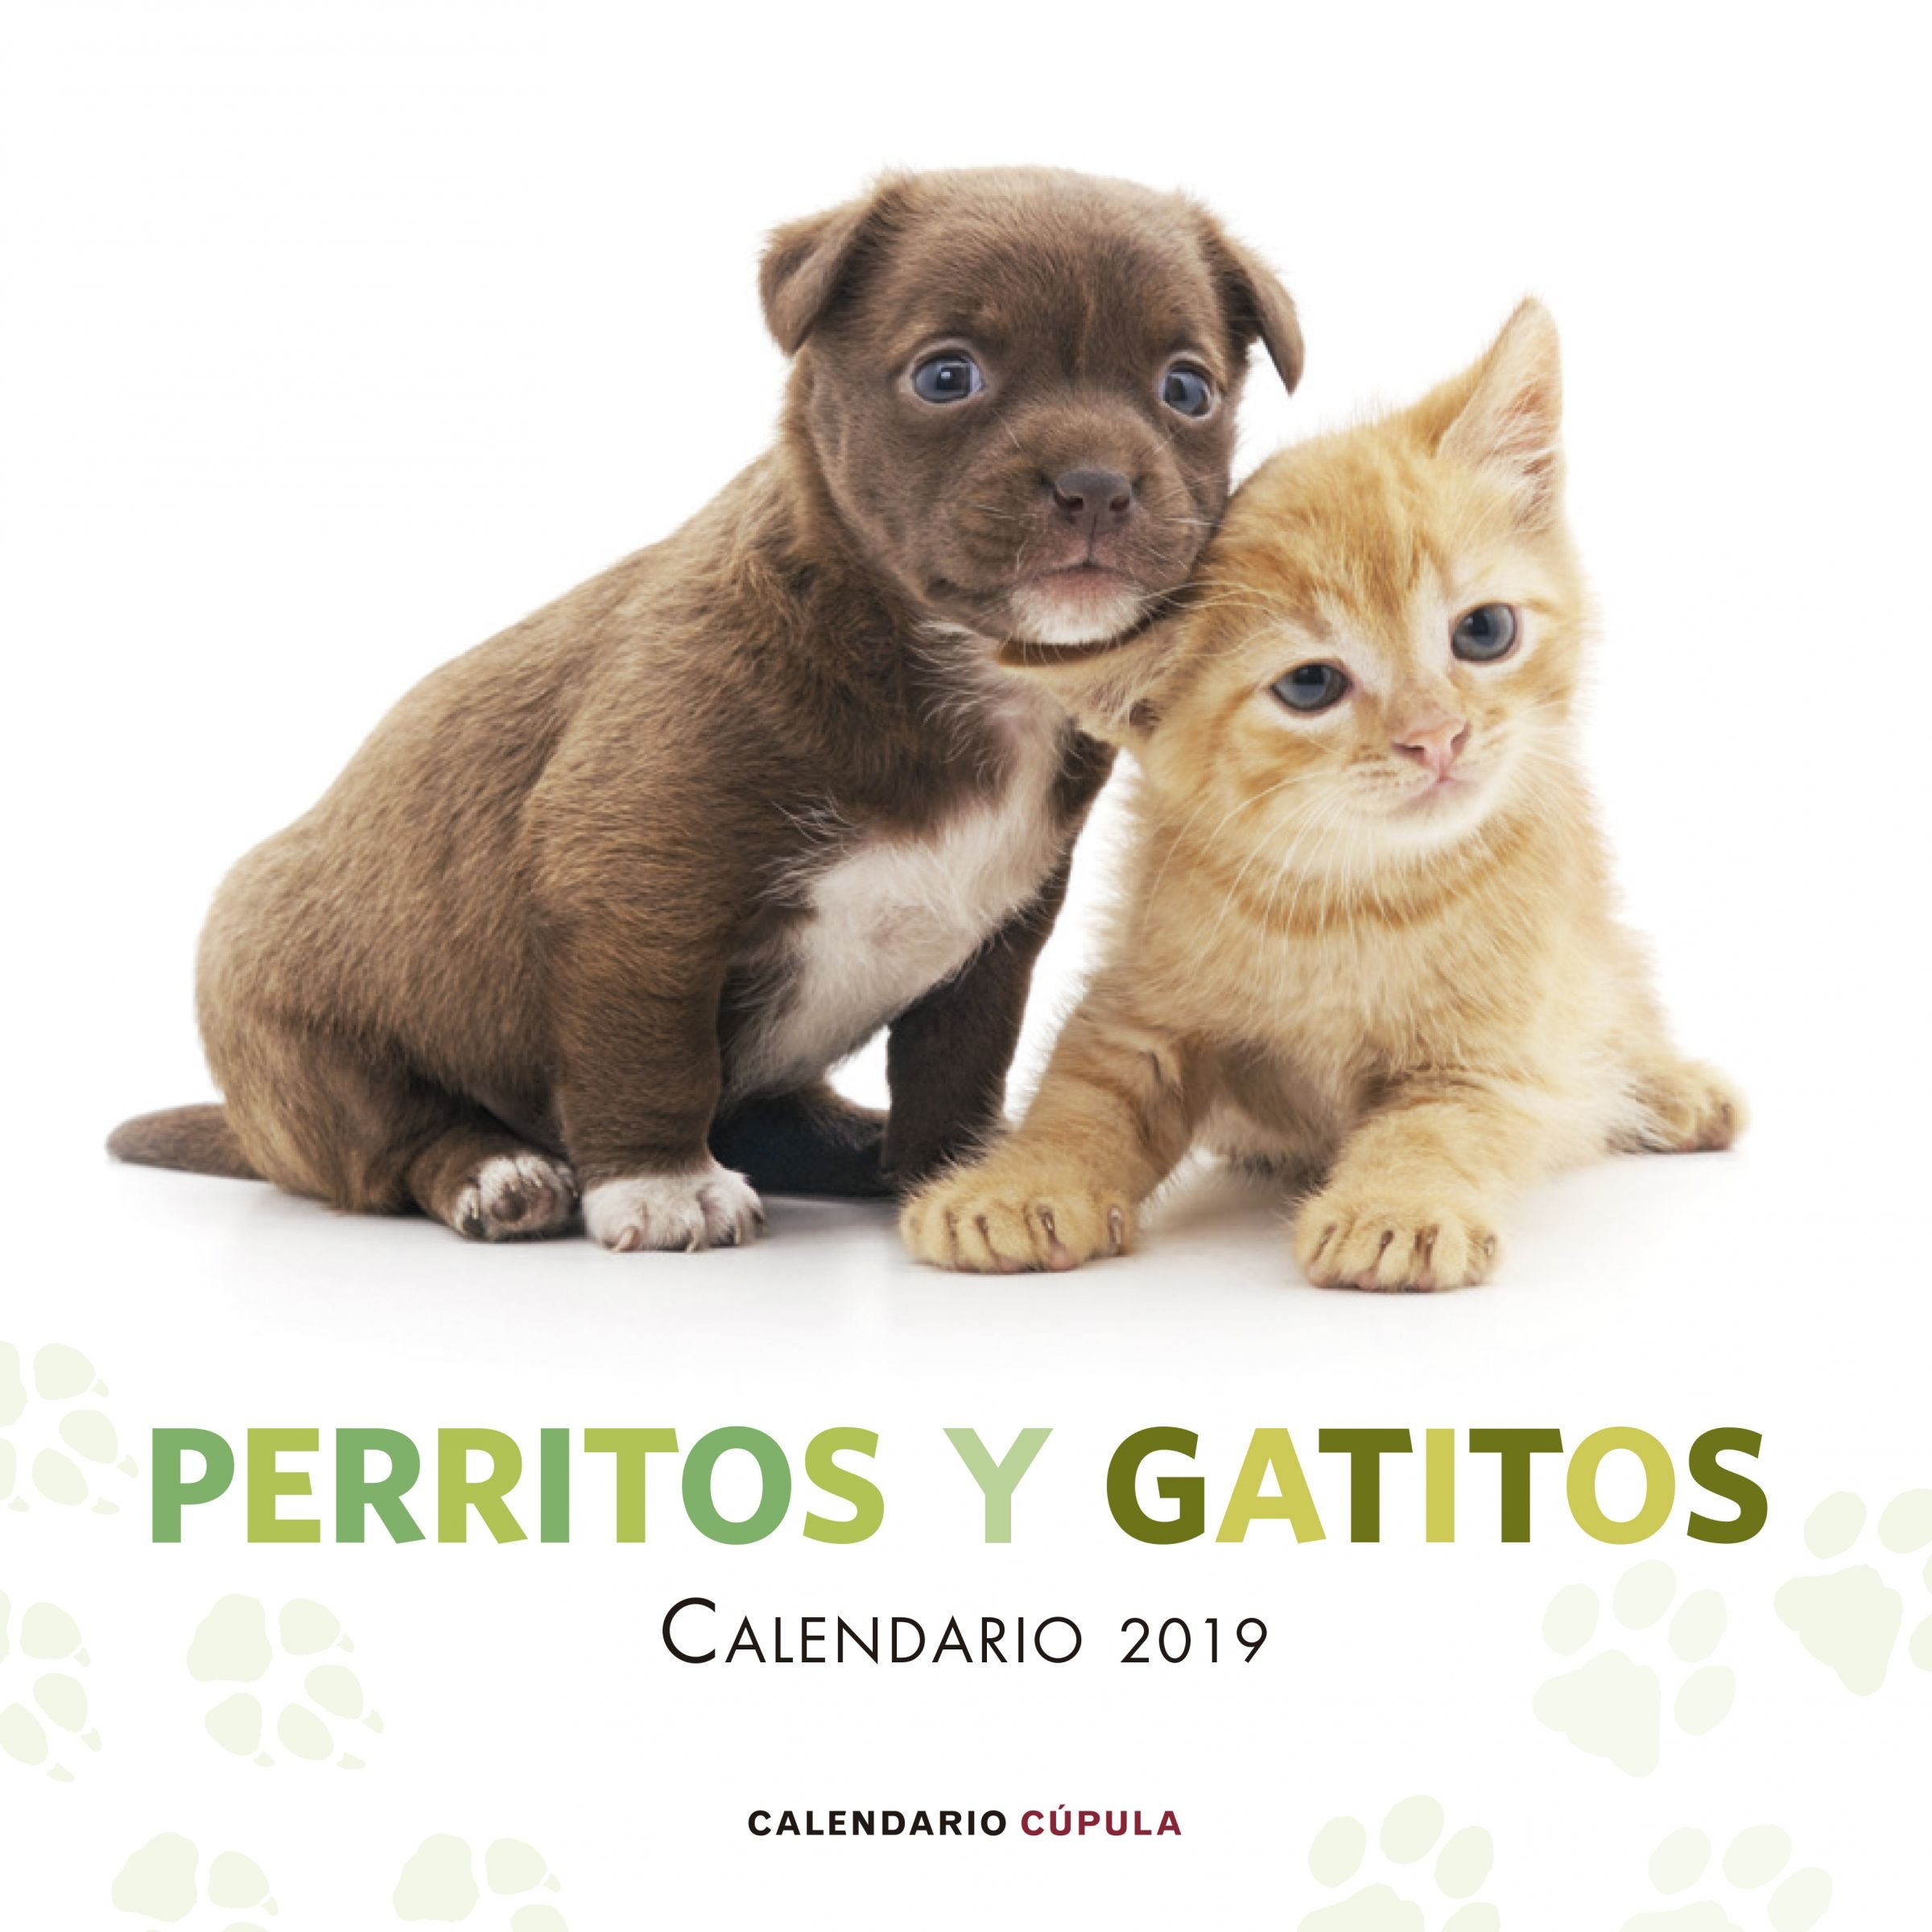 Calendario Perritos y gatitos 2019 Calendarios y agendas: Amazon ...